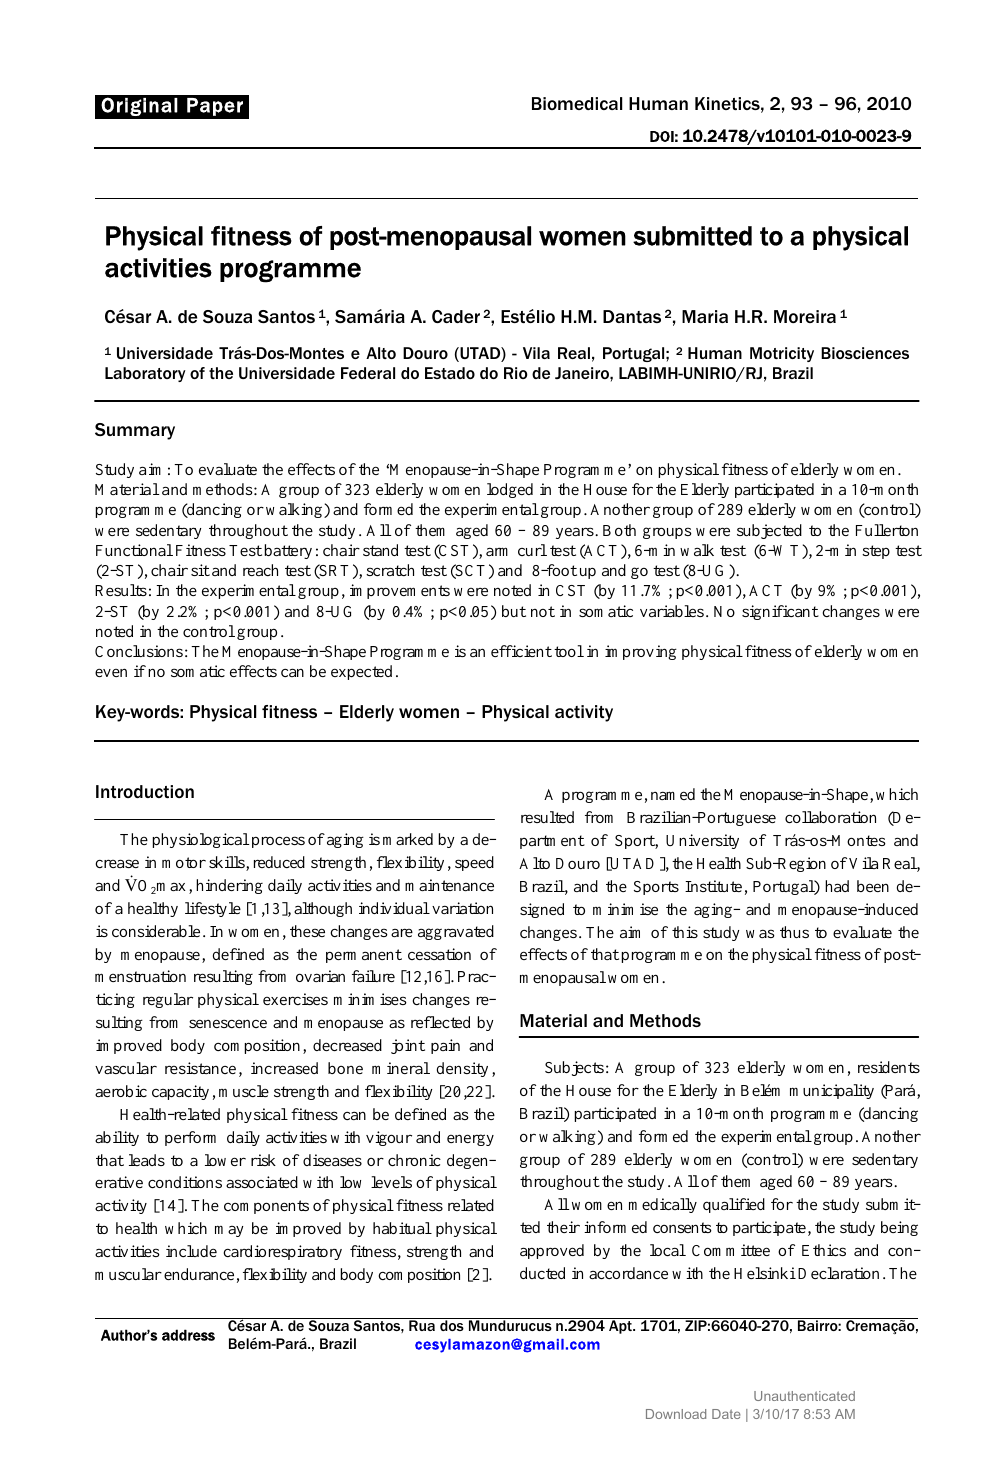 Physical fitness of post-menopausal women submitted to a